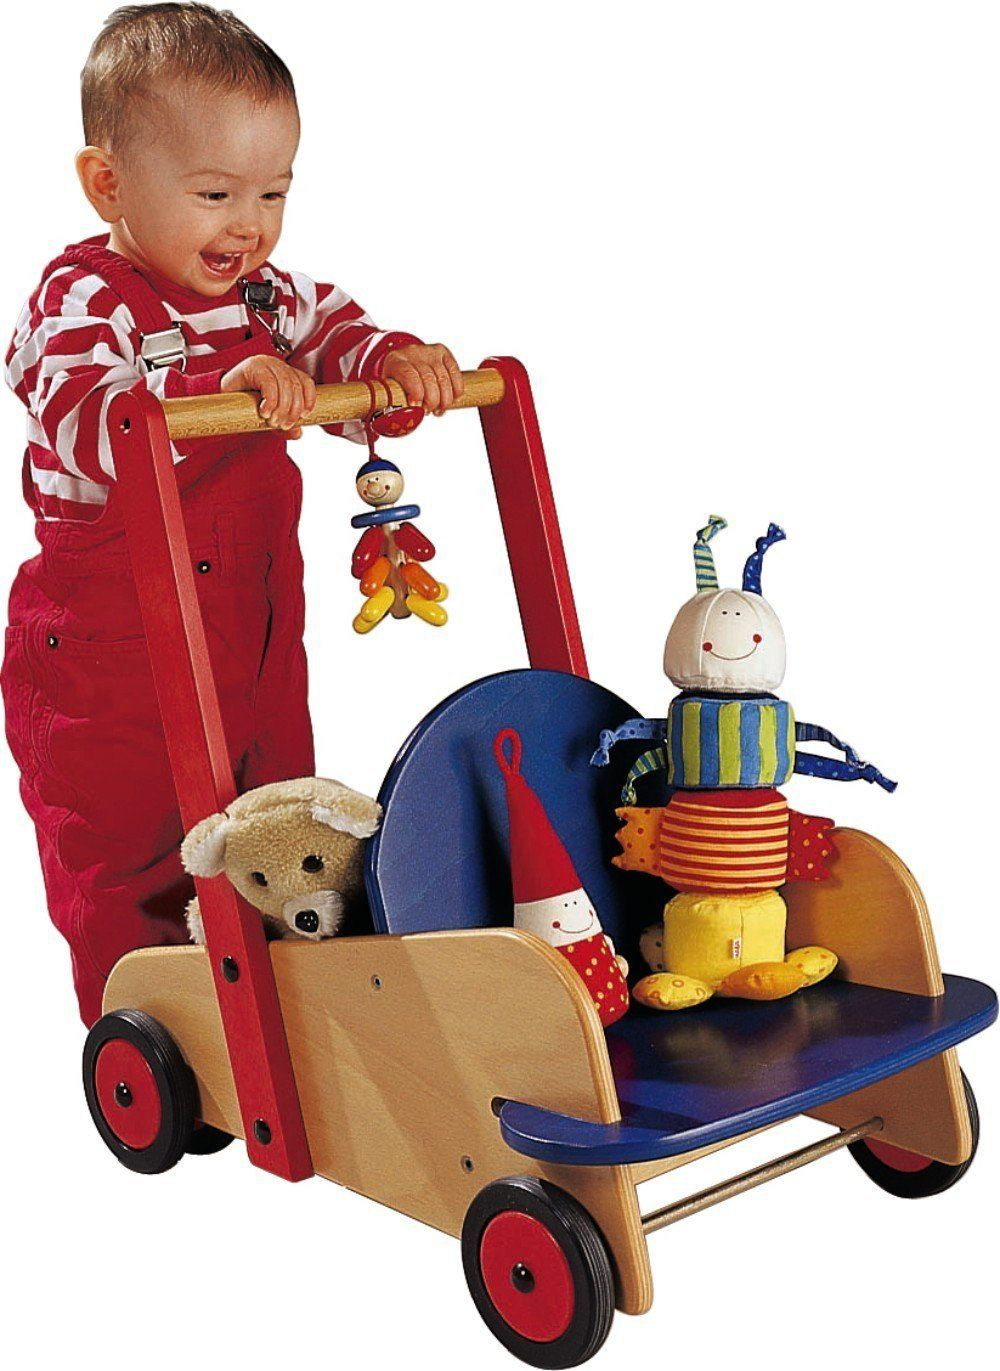 Amazon Com Haba Walker Wagon First Wooden Push Toy With Seat Storage For 10 Months And U Brinquedos De Madeira Artesanato Em Papelao Artigos Para Criancas